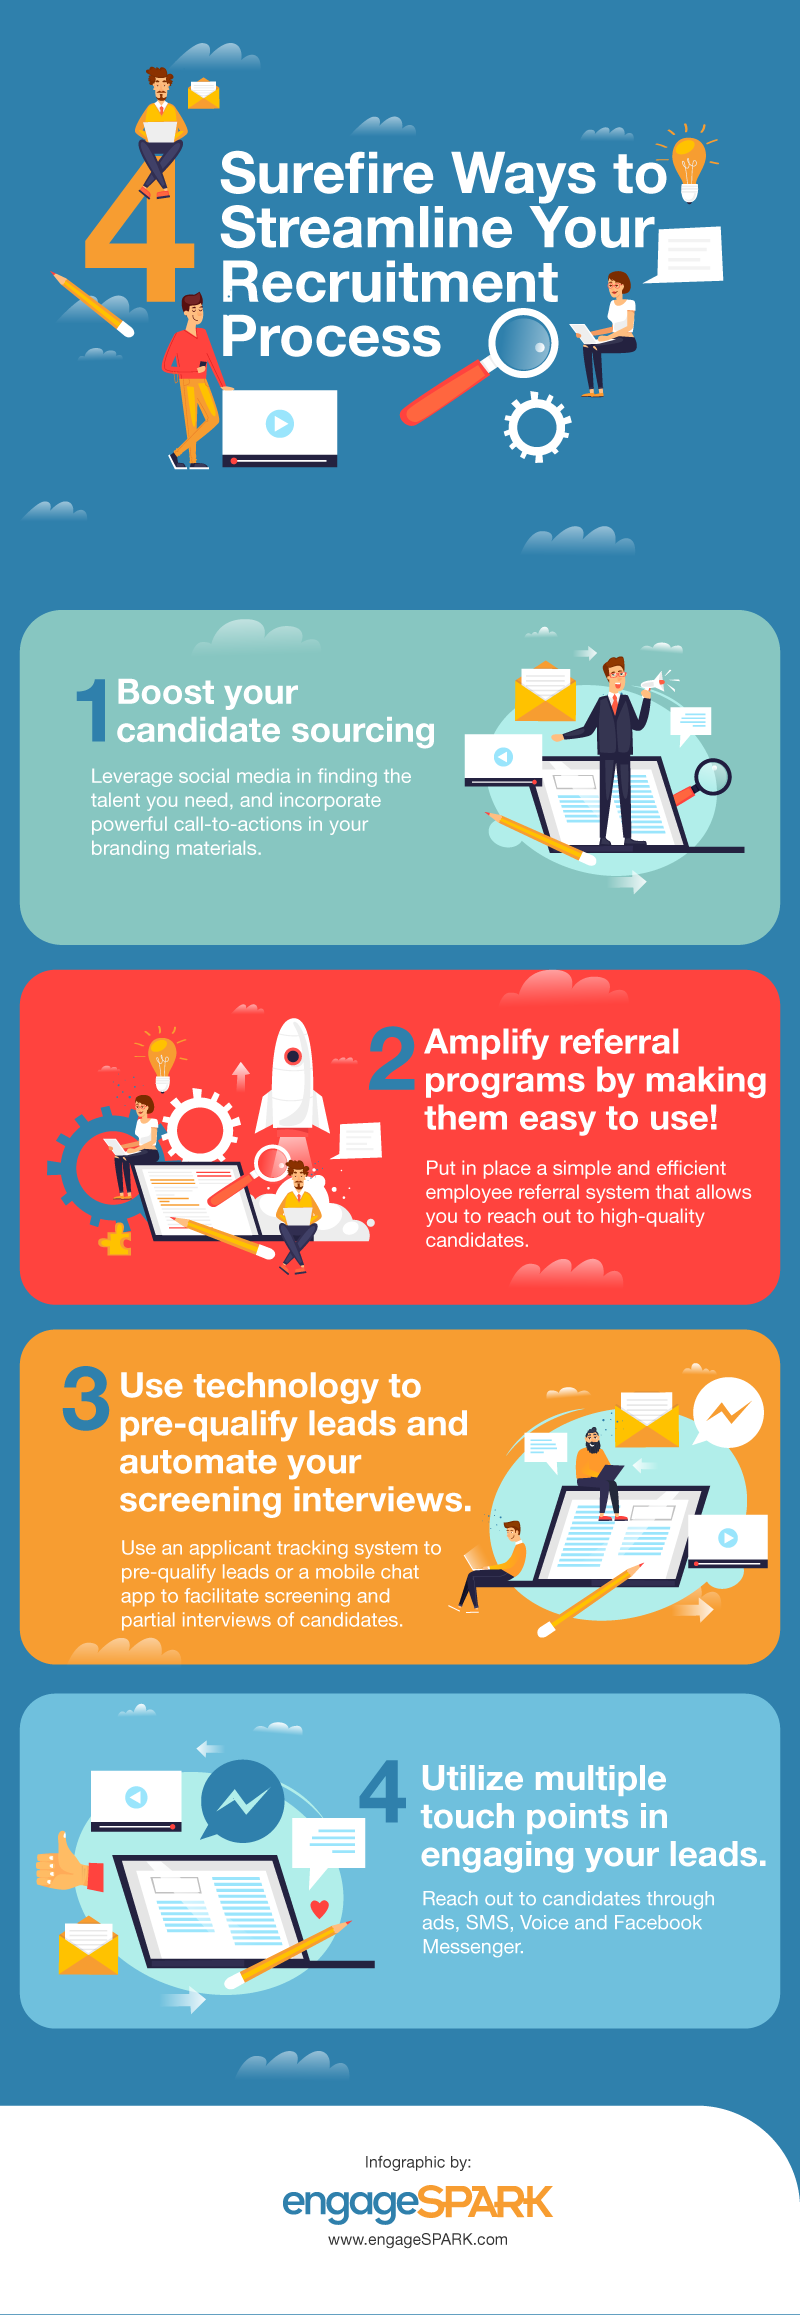 How To Streamline And Boost Your Recruitment Process 4 Novel Strategies Infographic Strategy Infographic Recruitment Recruitment Marketing